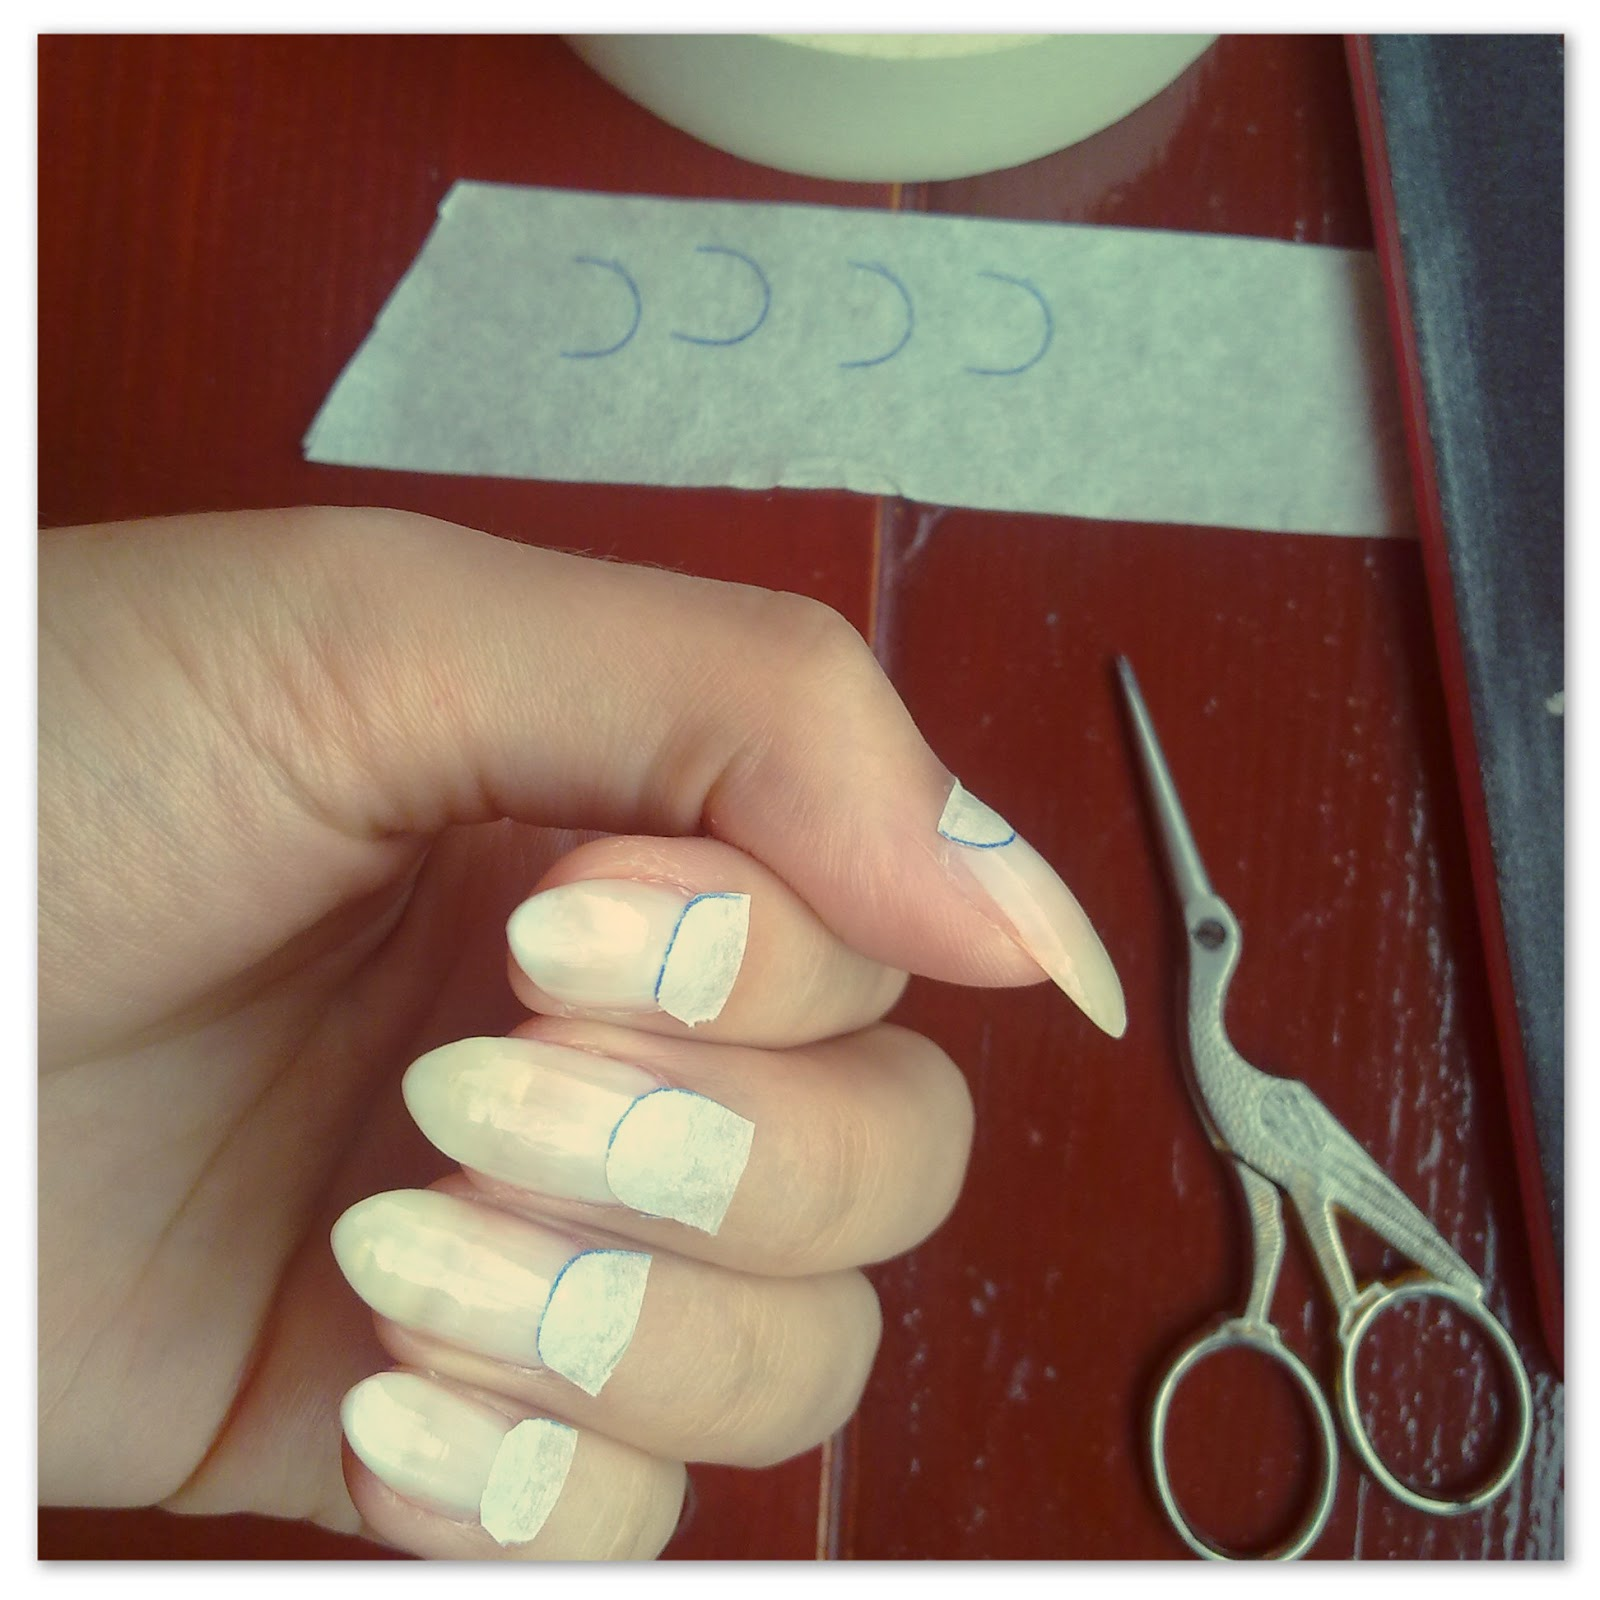 Idda van munster about my nails half moon step by step make sure they are straight and try to press down without ruining the base so there is no room for the other polish to seep through sciox Choice Image